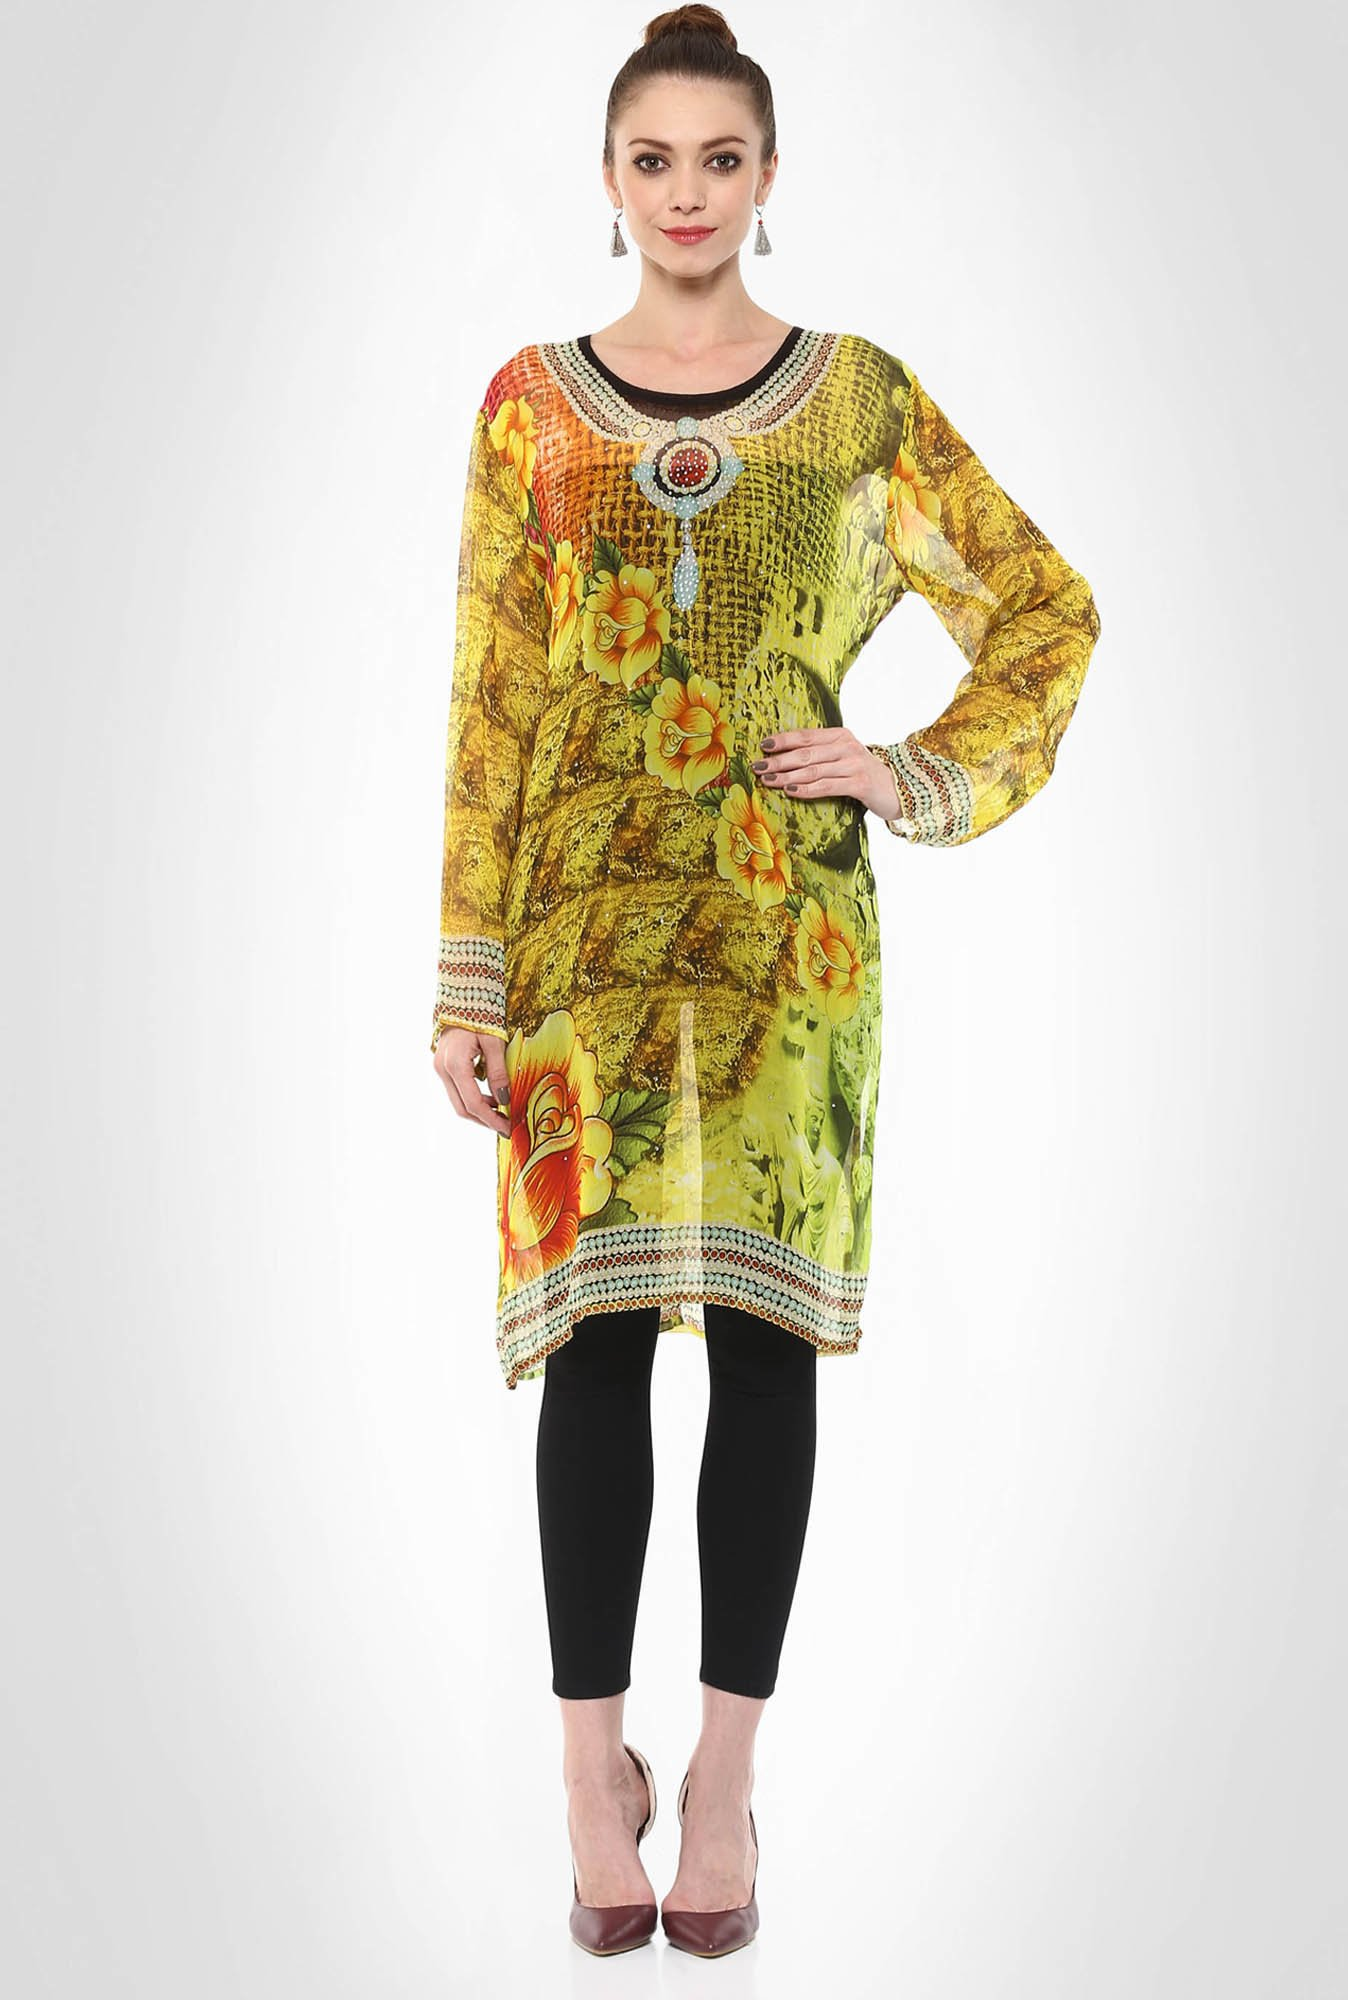 Rubina K Designer Wear Bright Yellow Printed Kurti By Kimaya